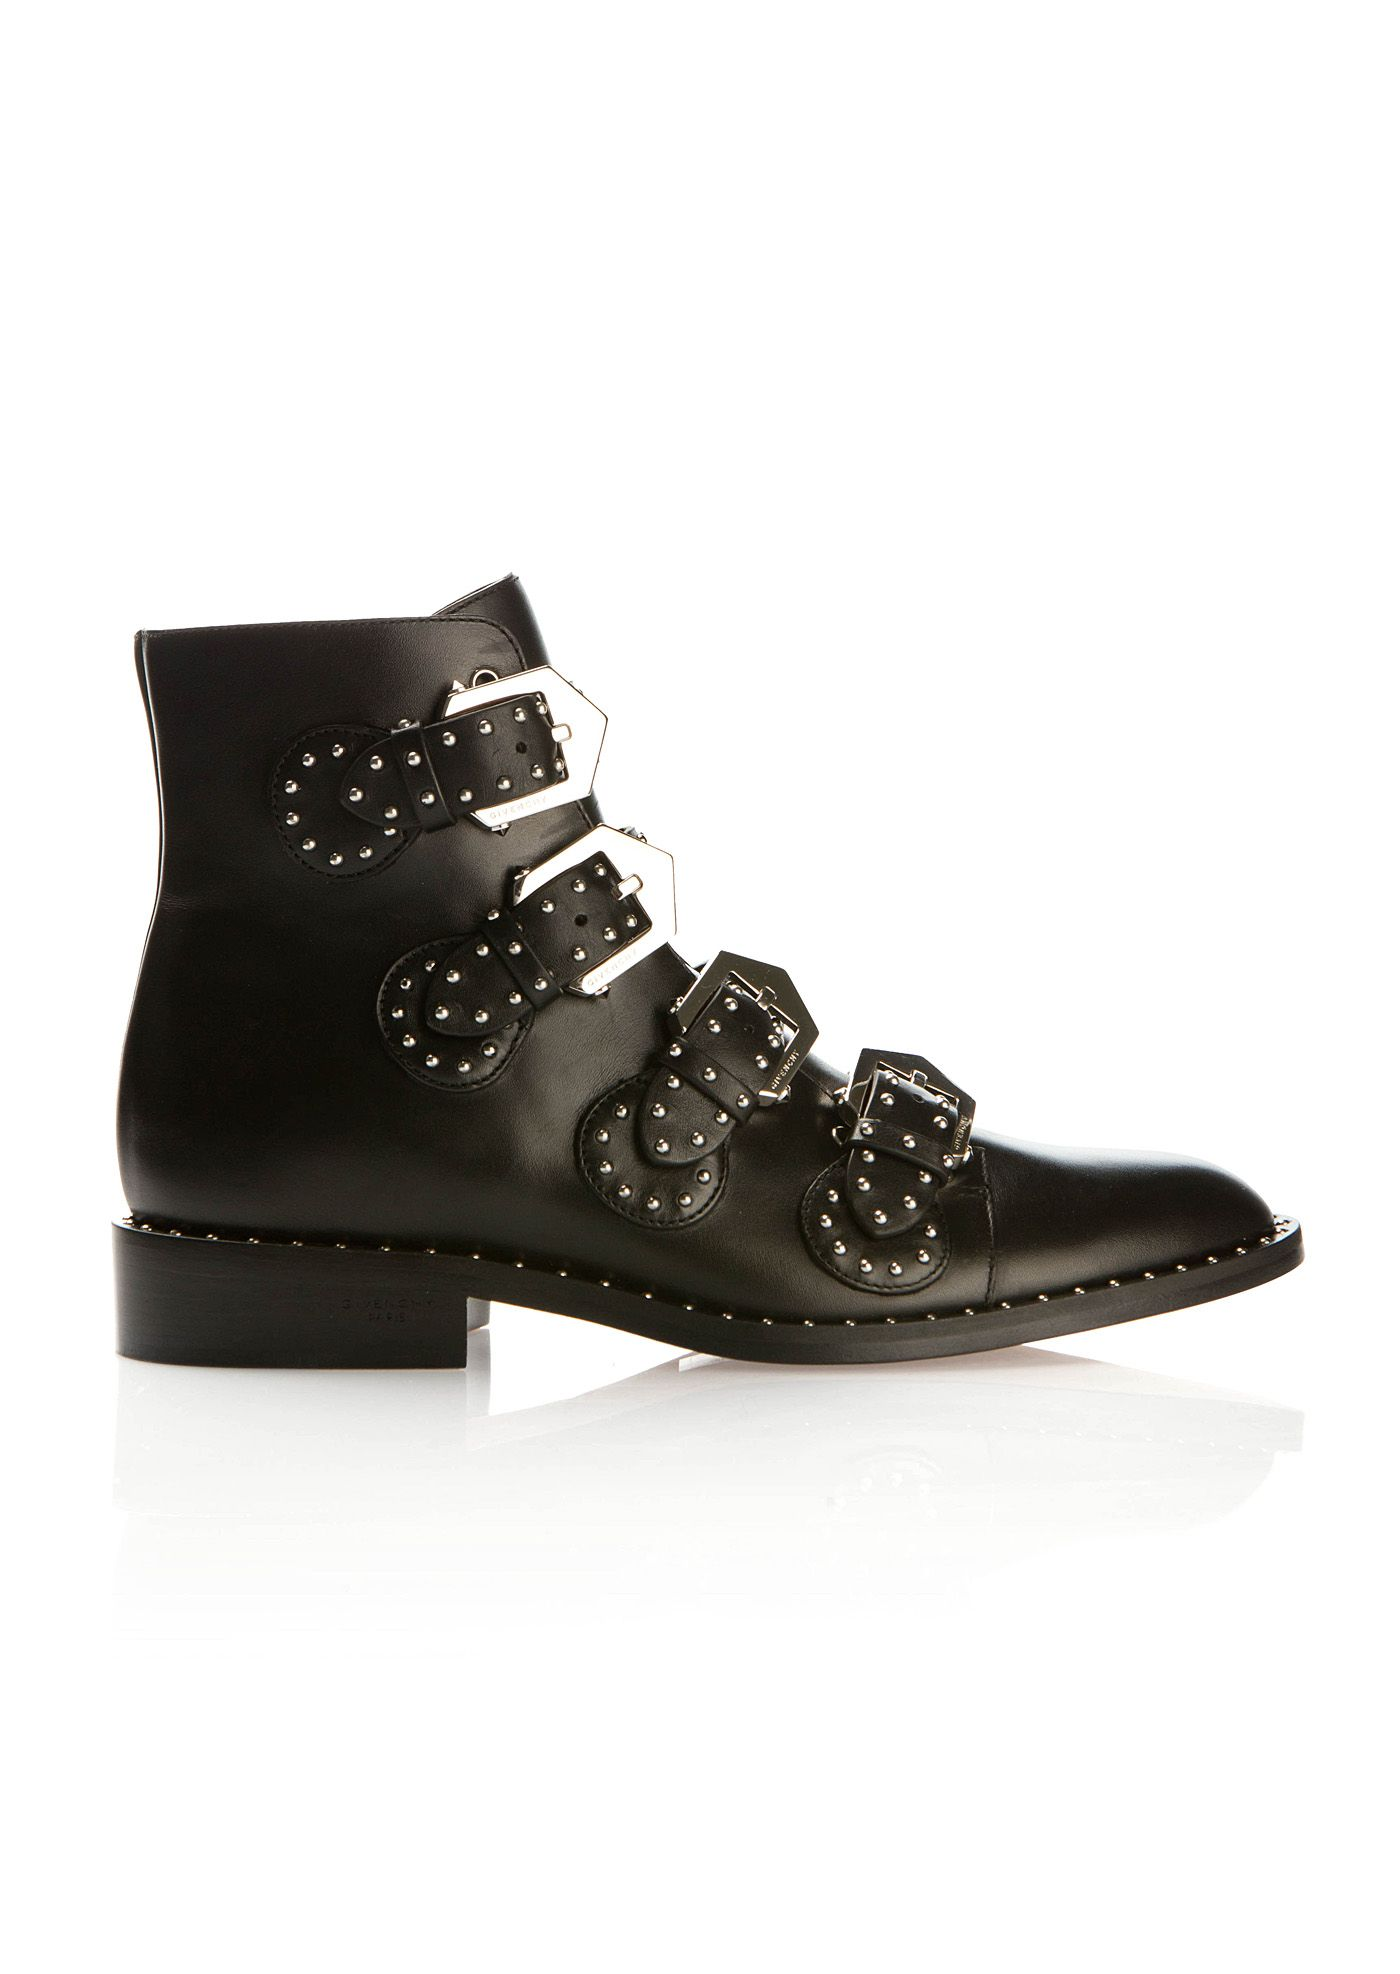 Givenchy Ankle boots :: Givenchy Elegant studded black leather ankle boots  | Montaigne Market